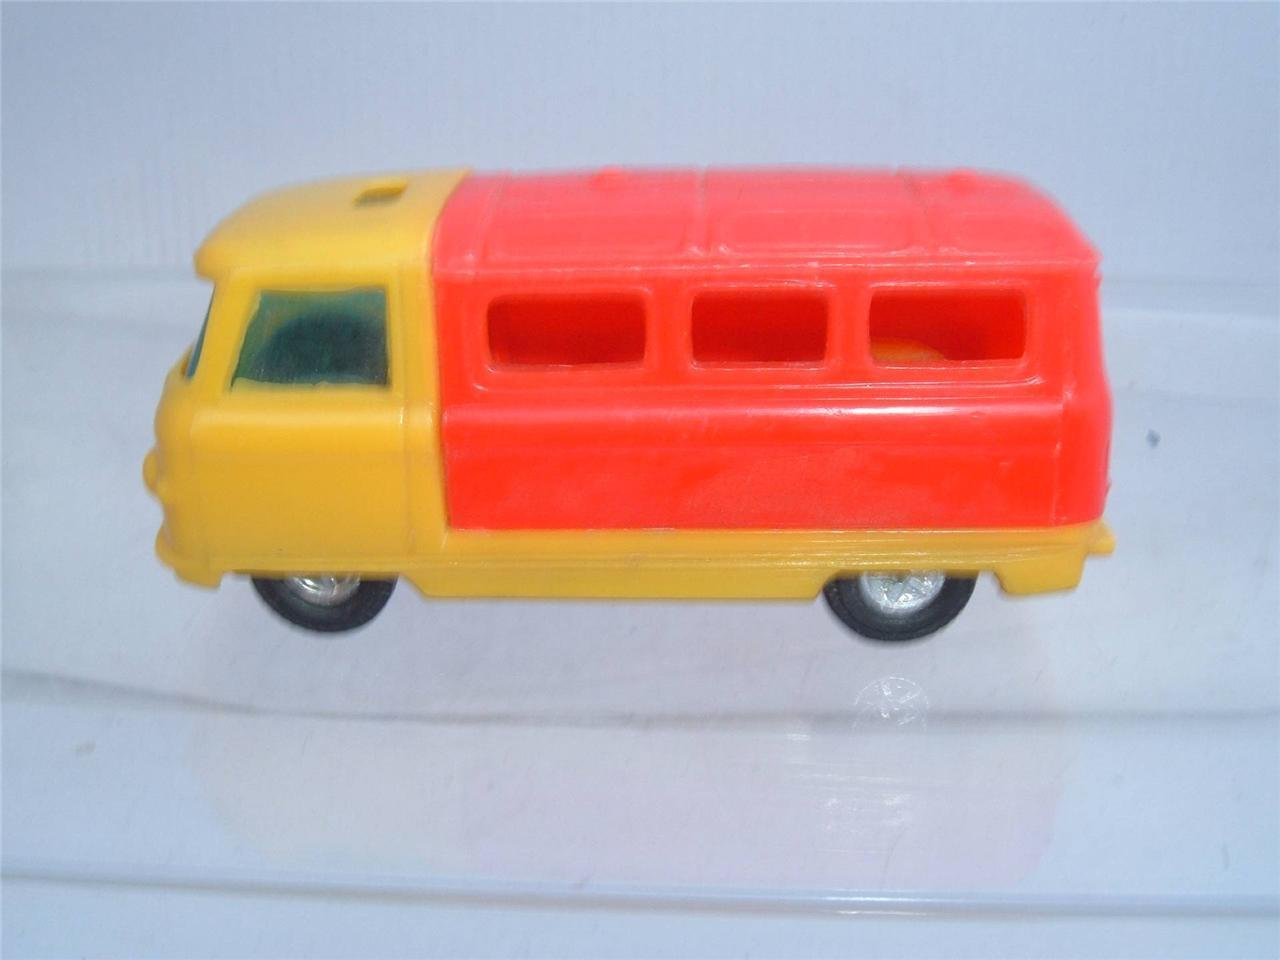 PLASTIC COMMER MINI BUS MADE BY PETREL HONG KONG FRICTION MOTOR WORKING SEE PICS